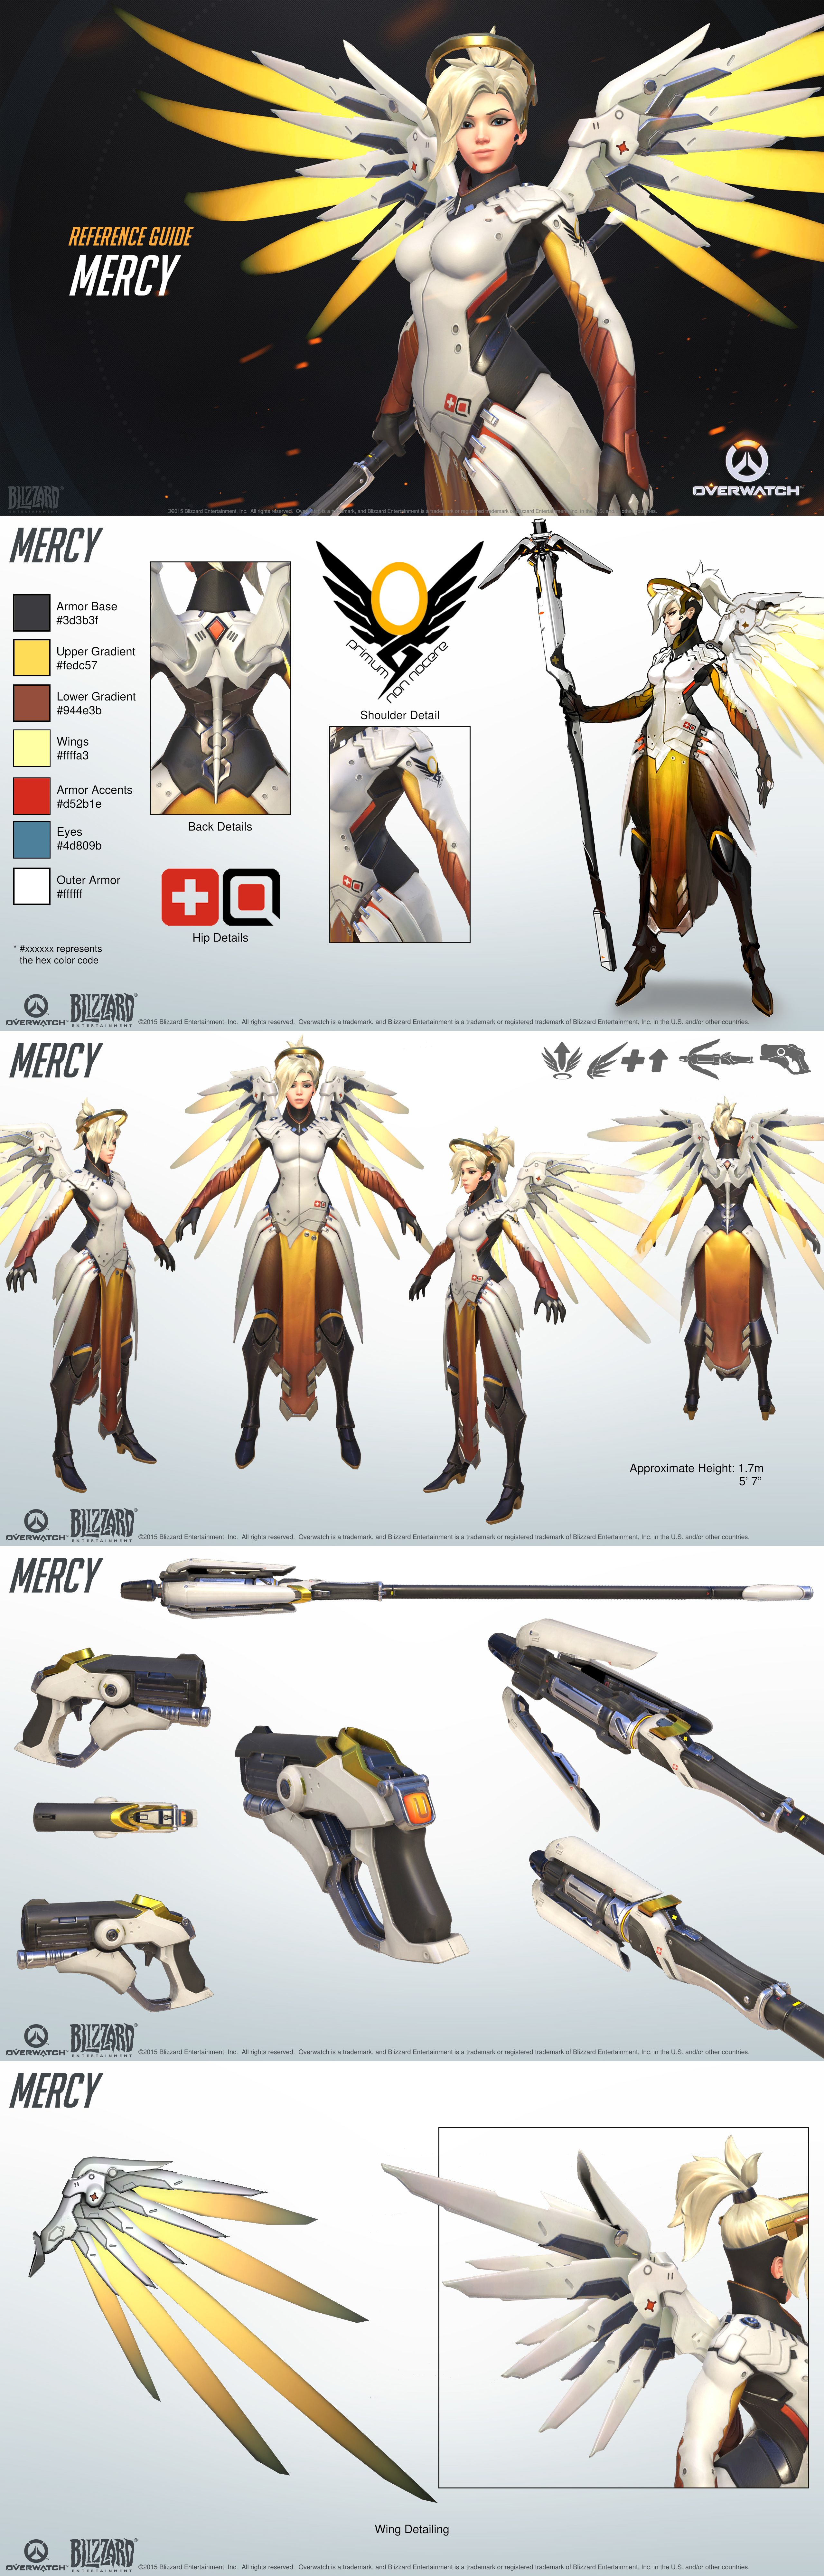 overwatch - mercy reference guide | characters | pinterest